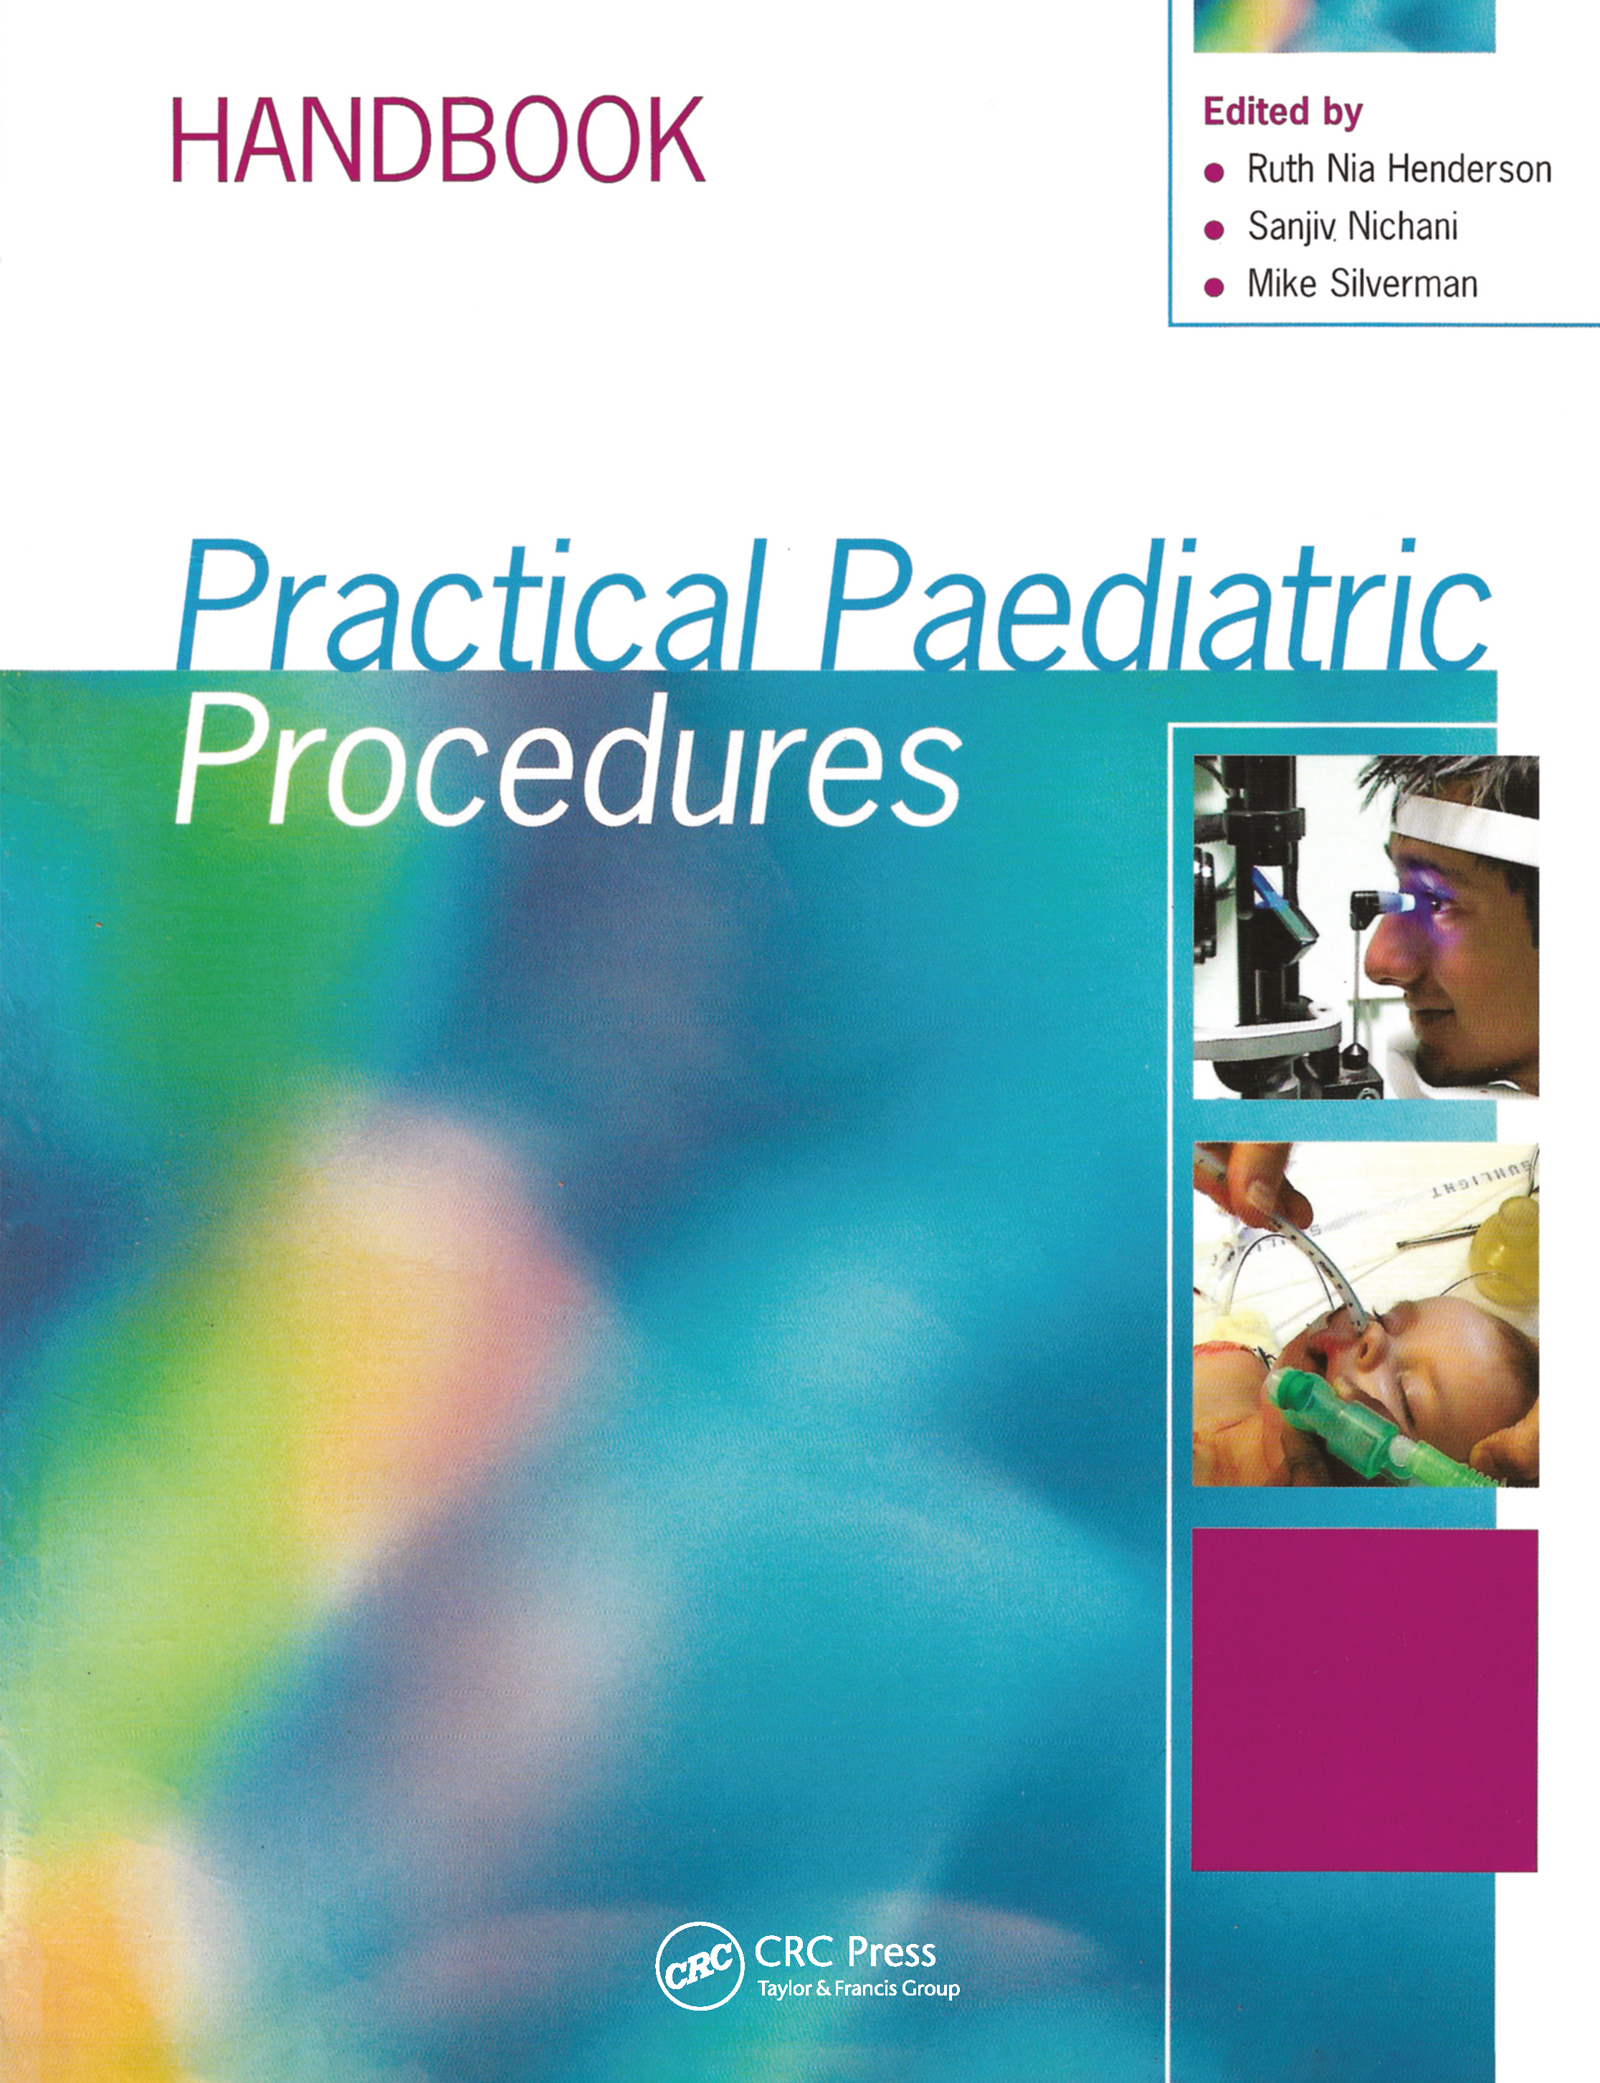 Practical Paediatric Procedures: 1st Edition (Pack - Book and DVD) book cover